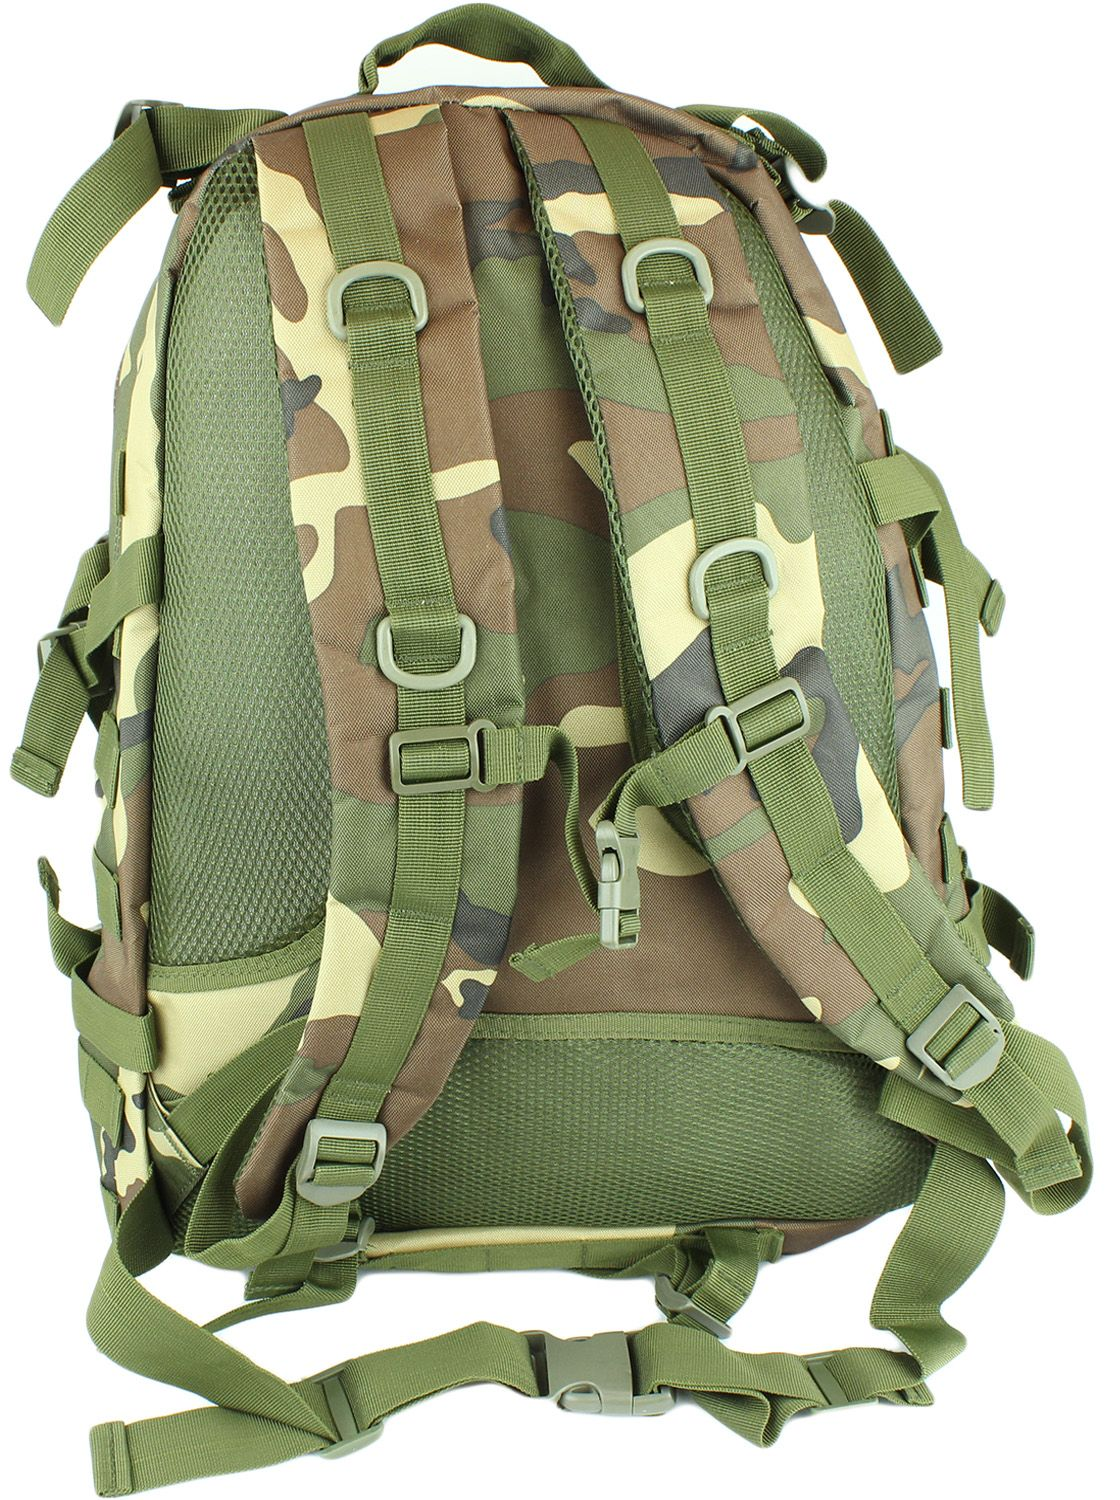 40 Liter Capacity Camo Backpack Camouflage Combat Go Travel Bag